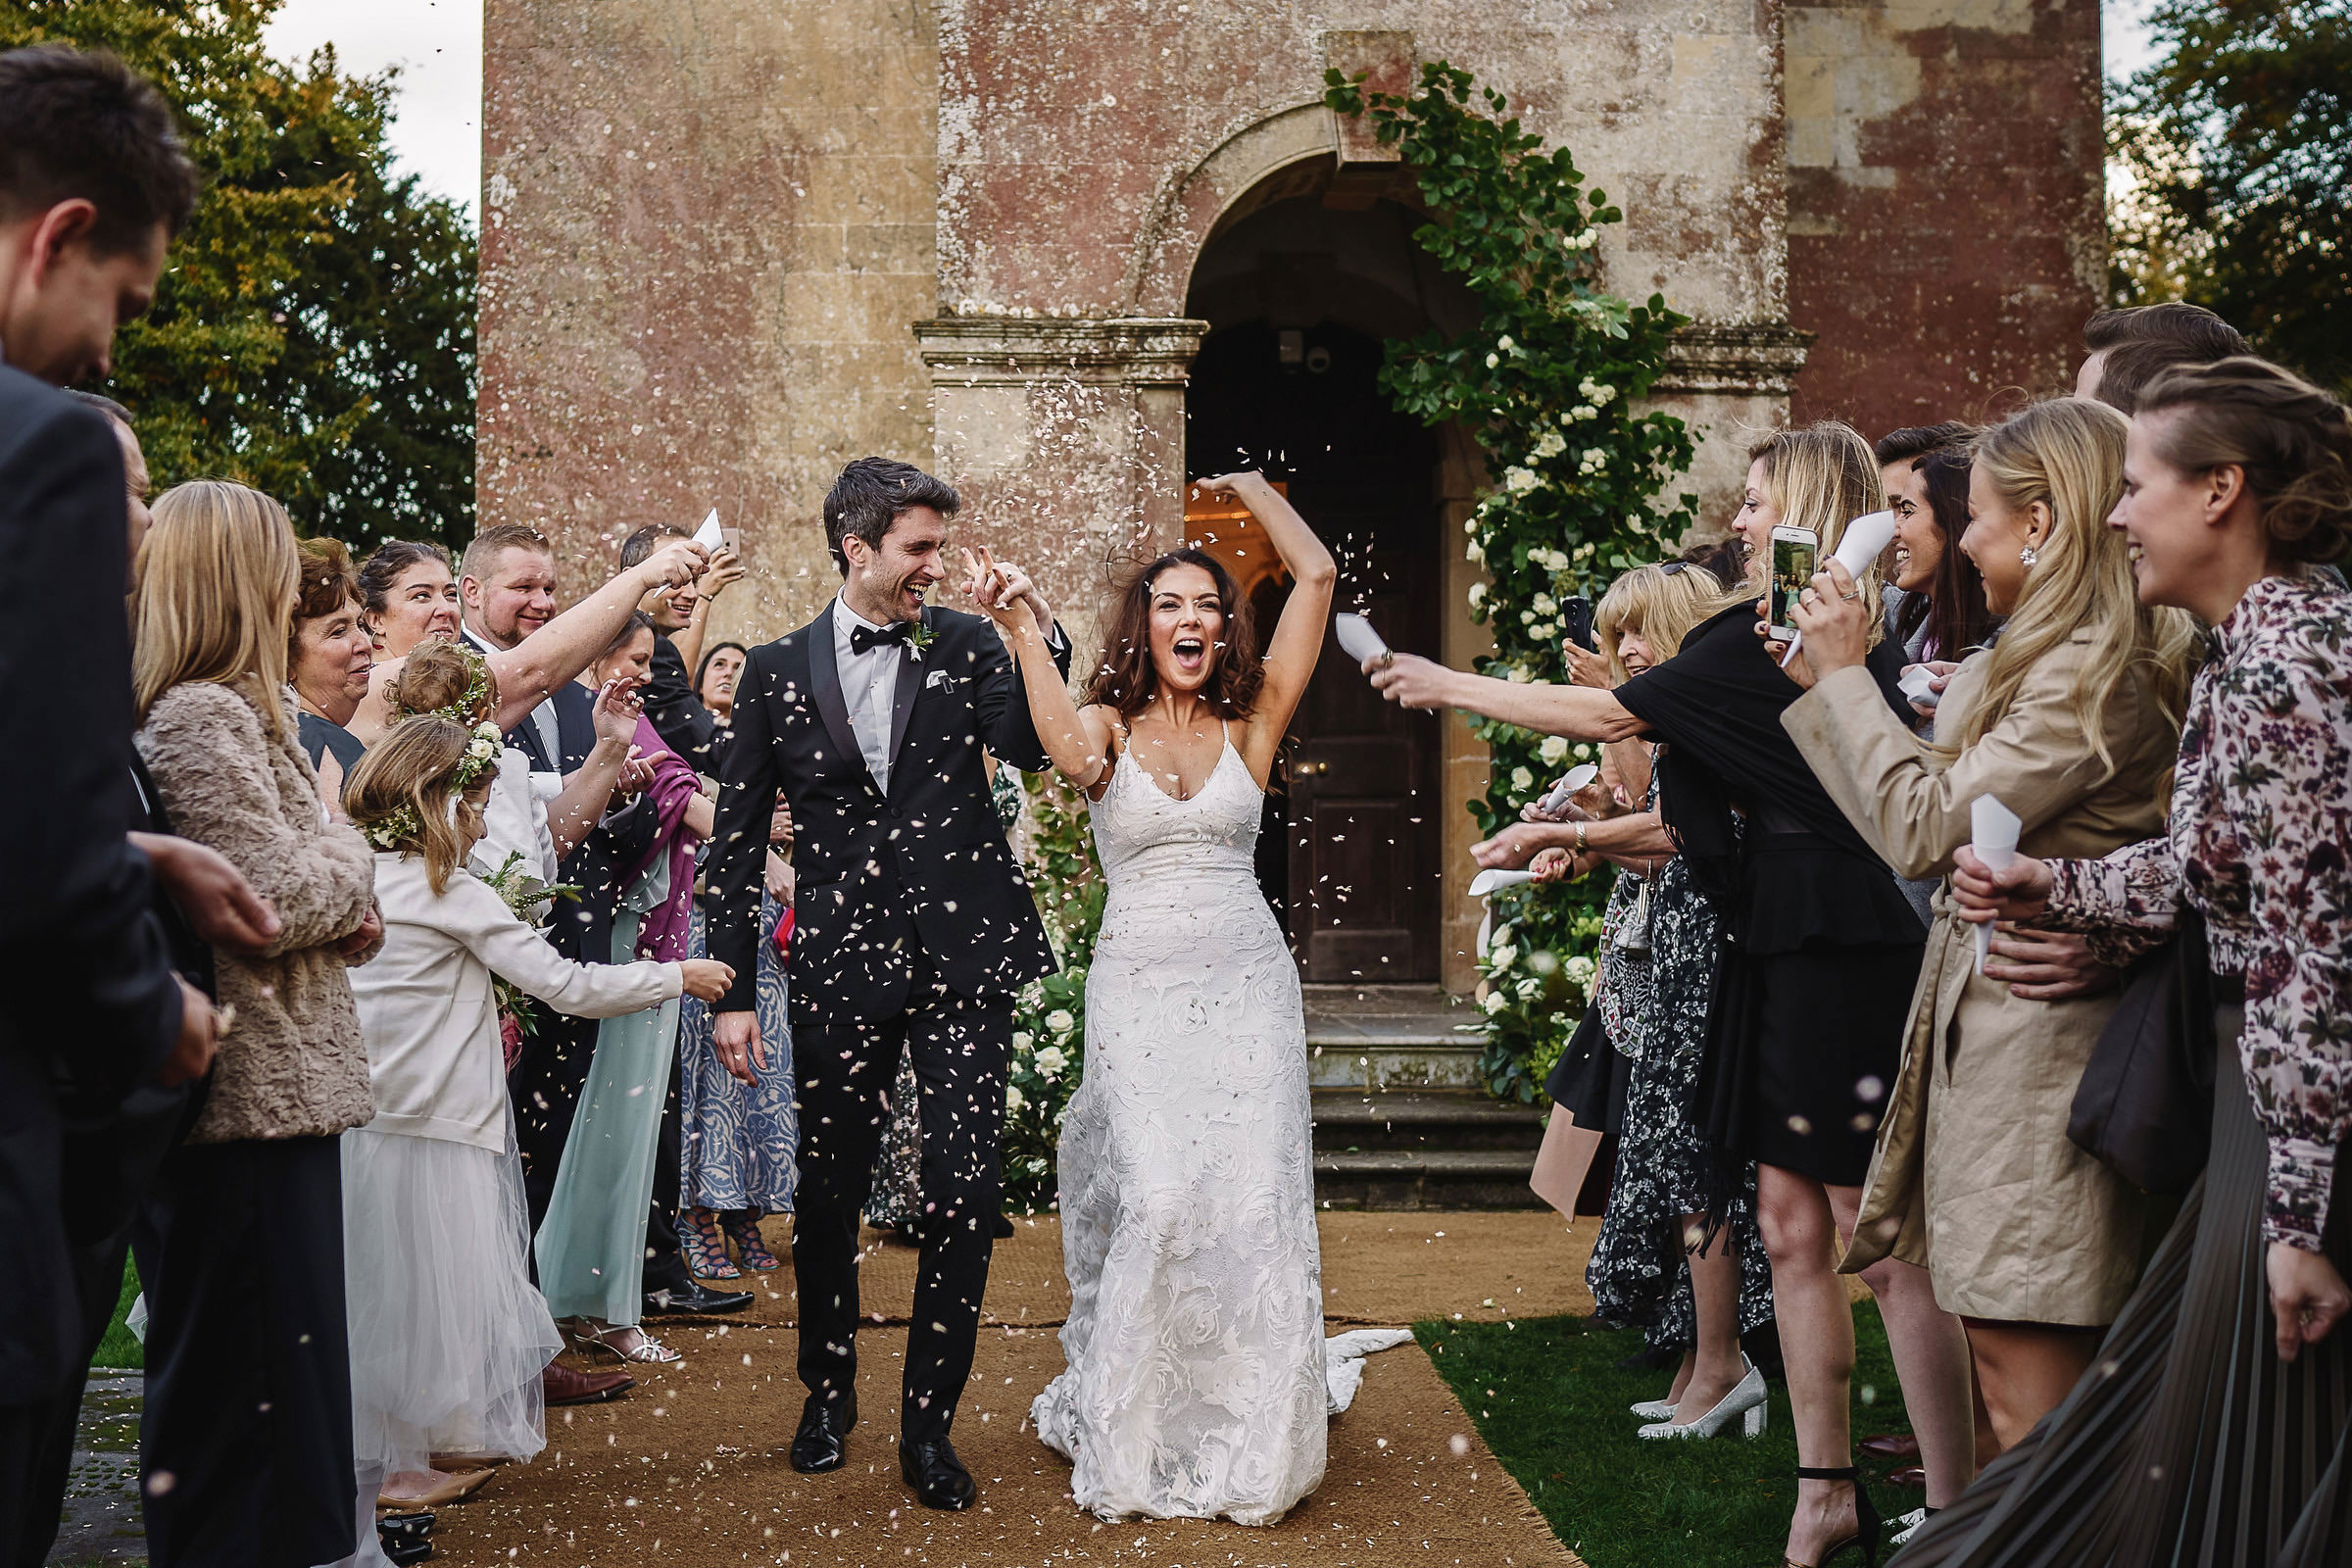 Babbington House church wedding couple exit - photo by Andy Gaines Photography